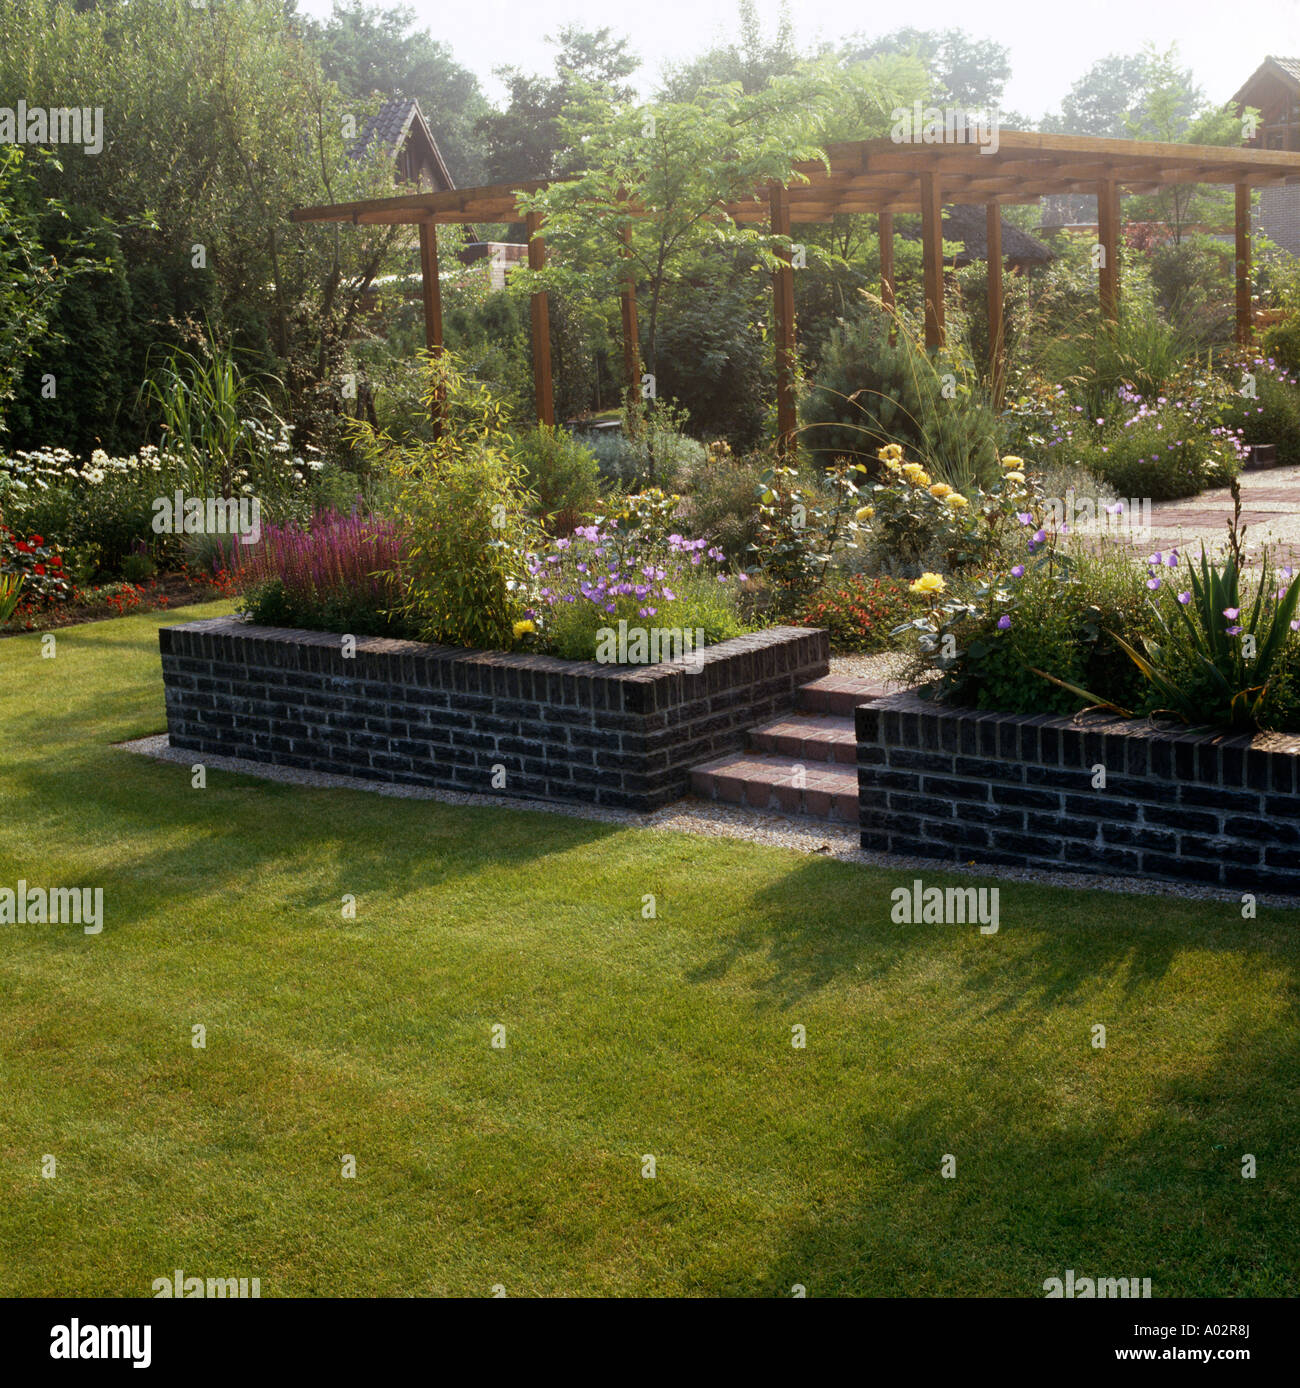 https www alamy com lawn in front of steps to patio with raised beds and pergola in country image9861137 html